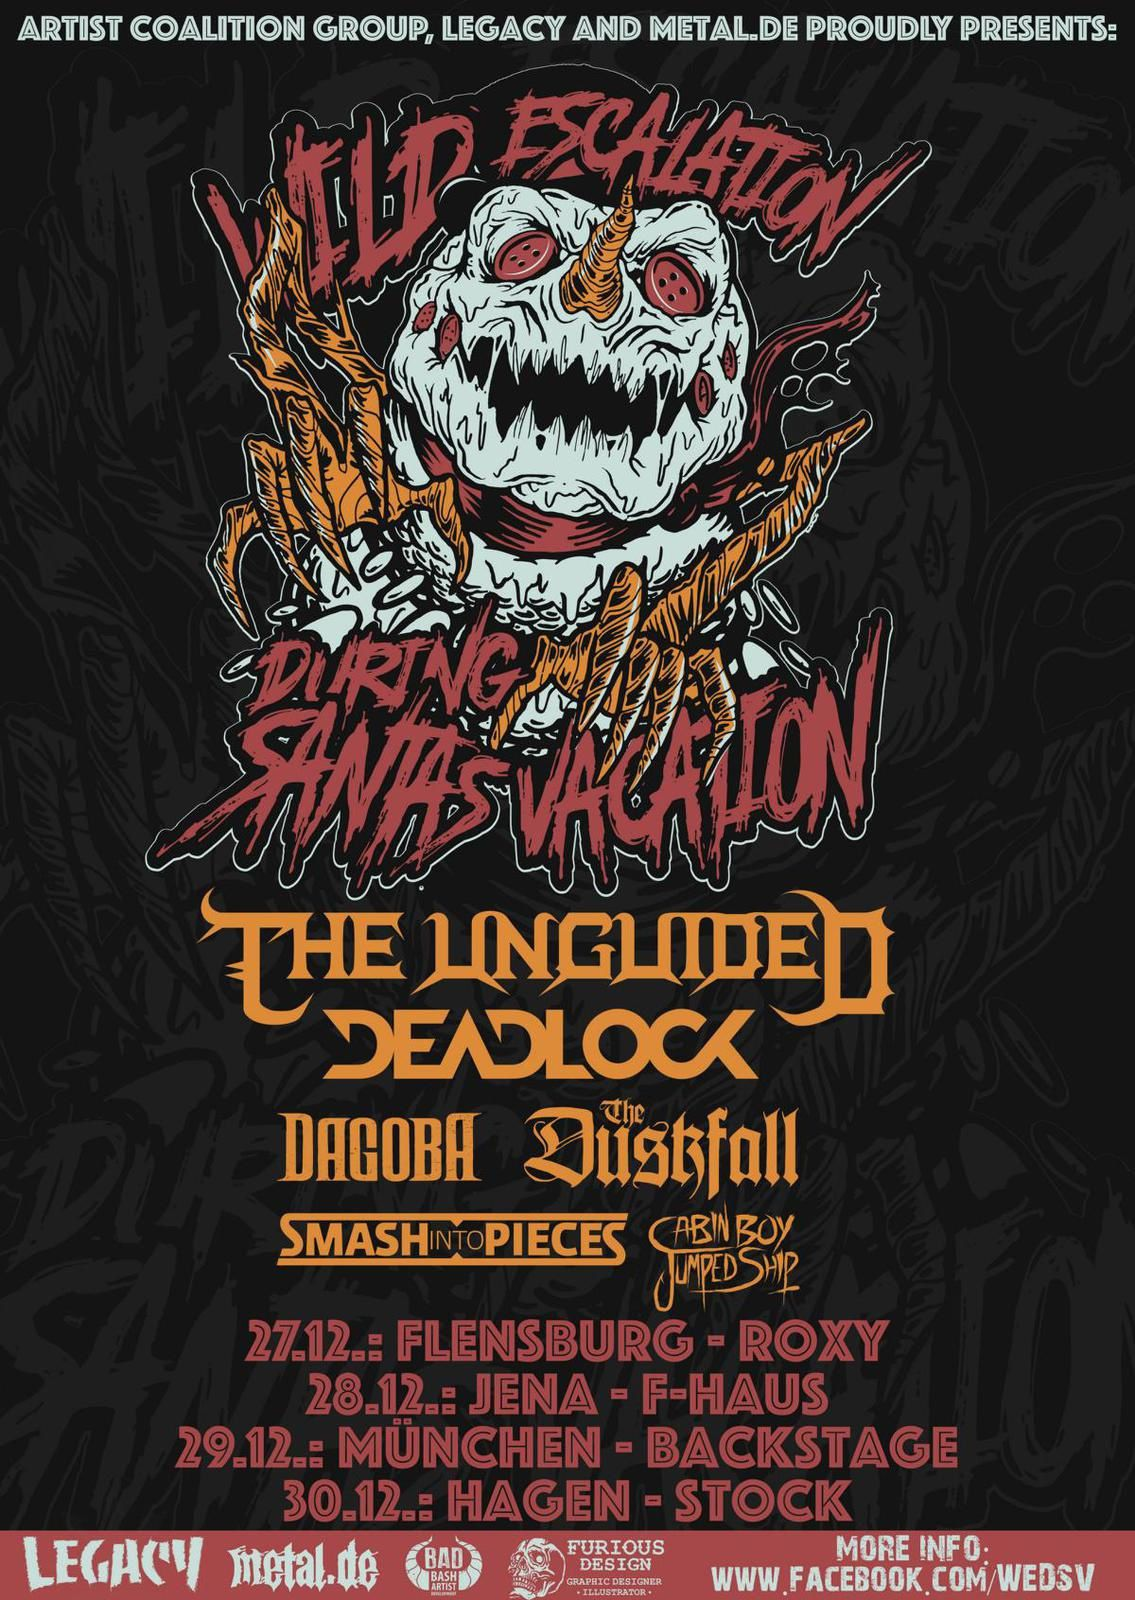 DEADLOCK and THE UNGUIDED on tour in Germany